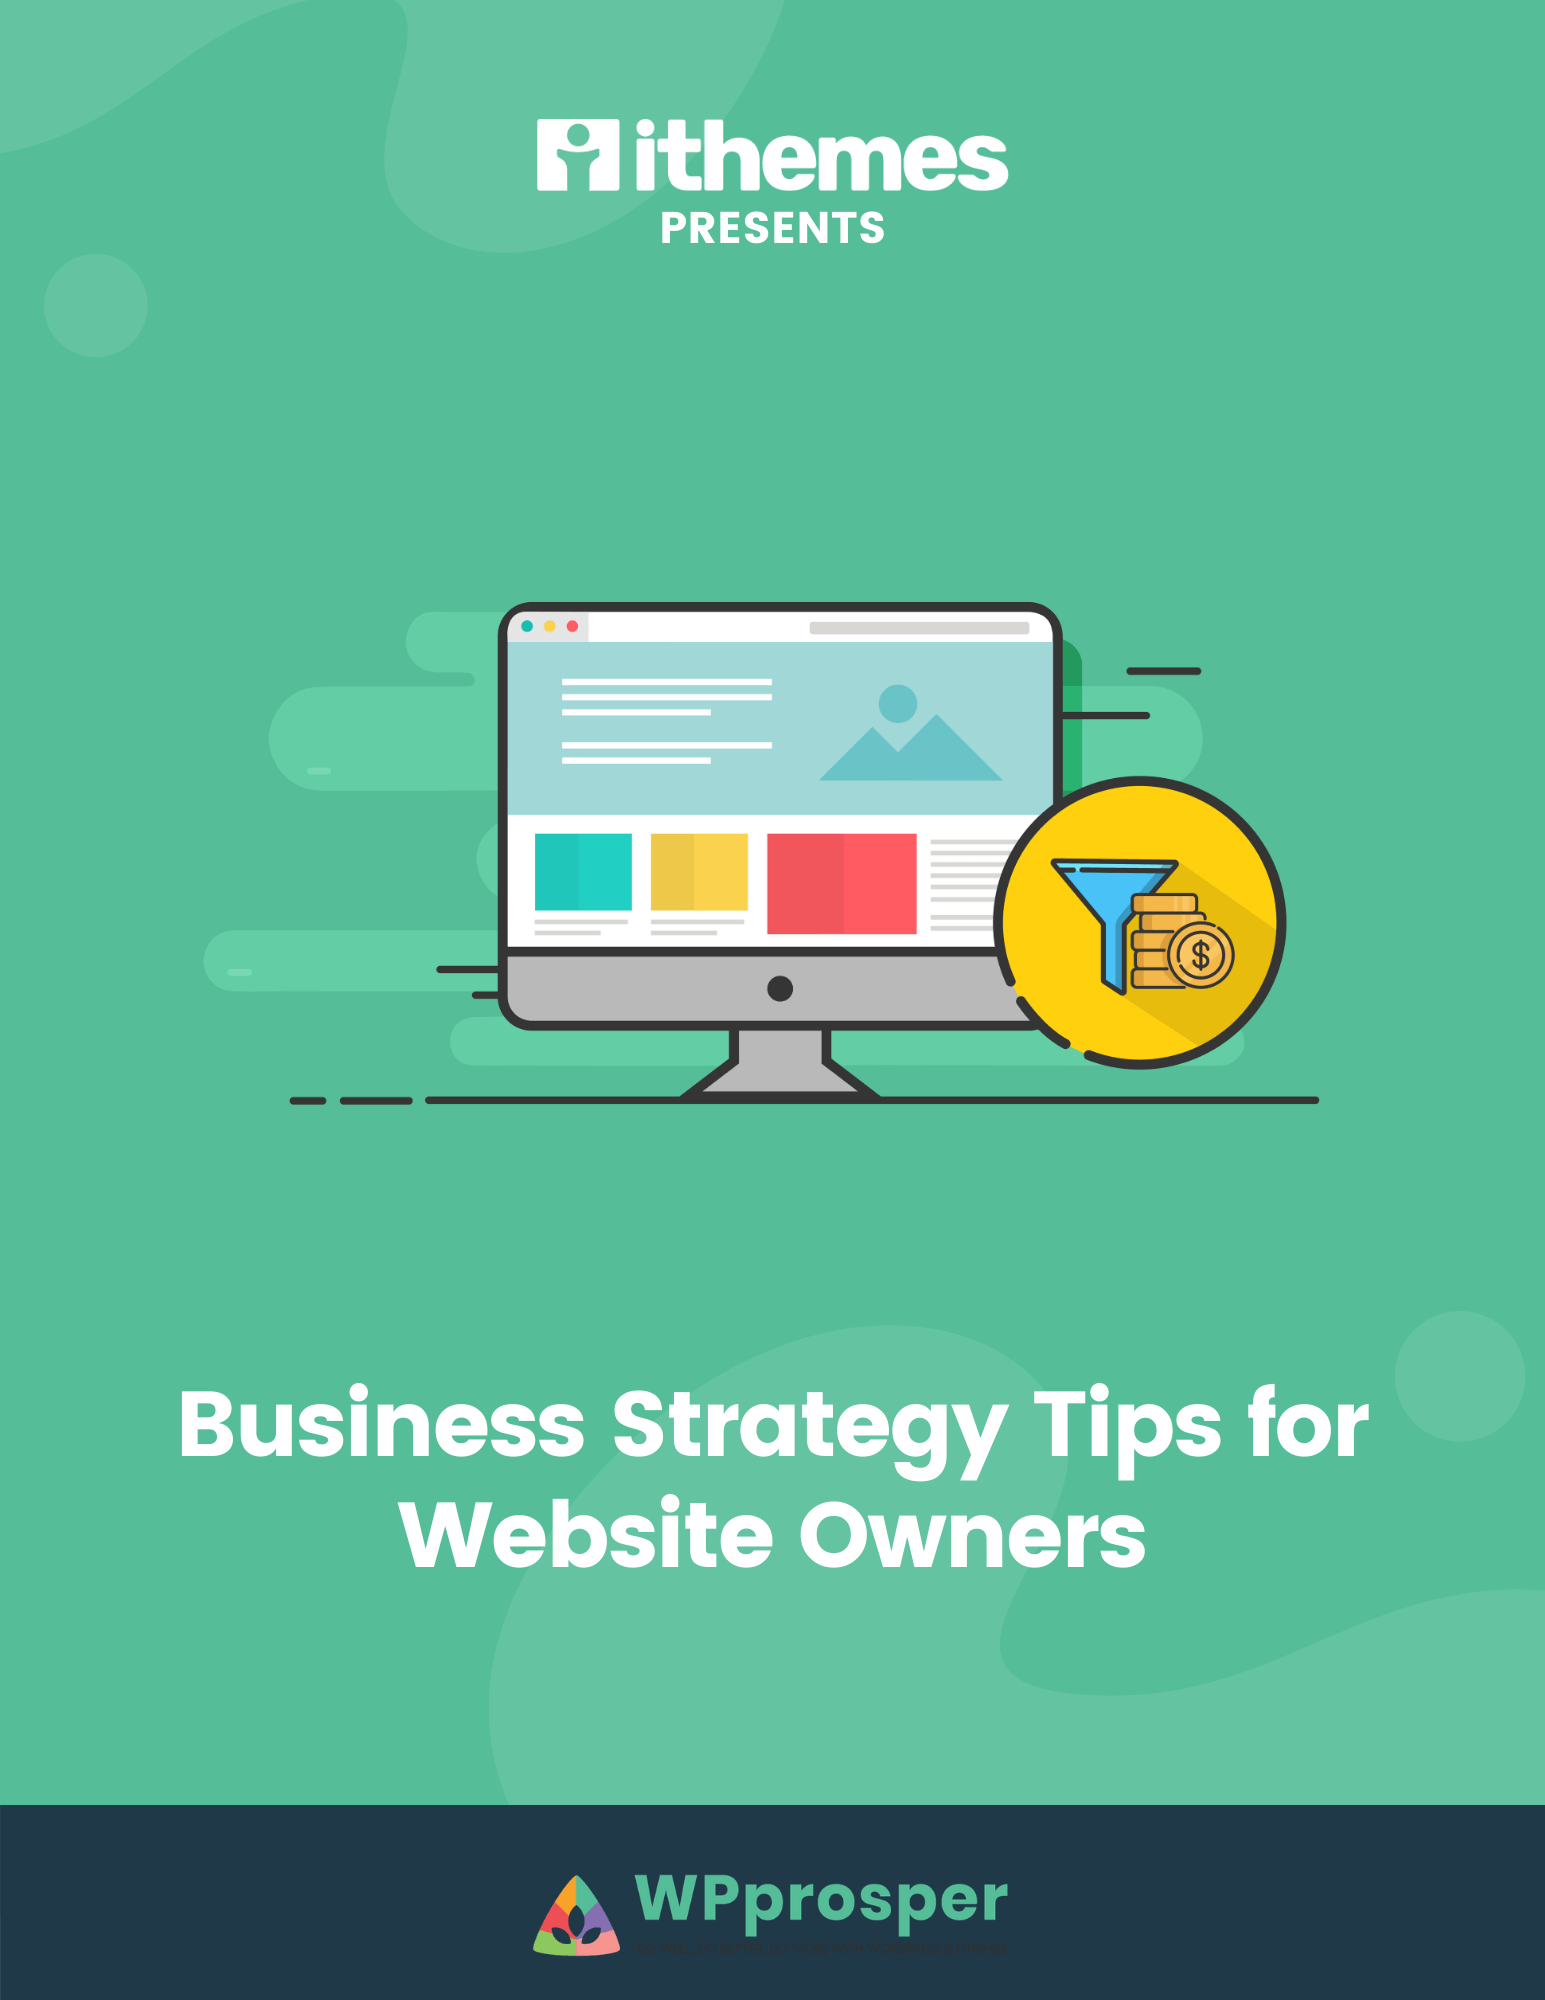 WPprosper Business strategy and tips